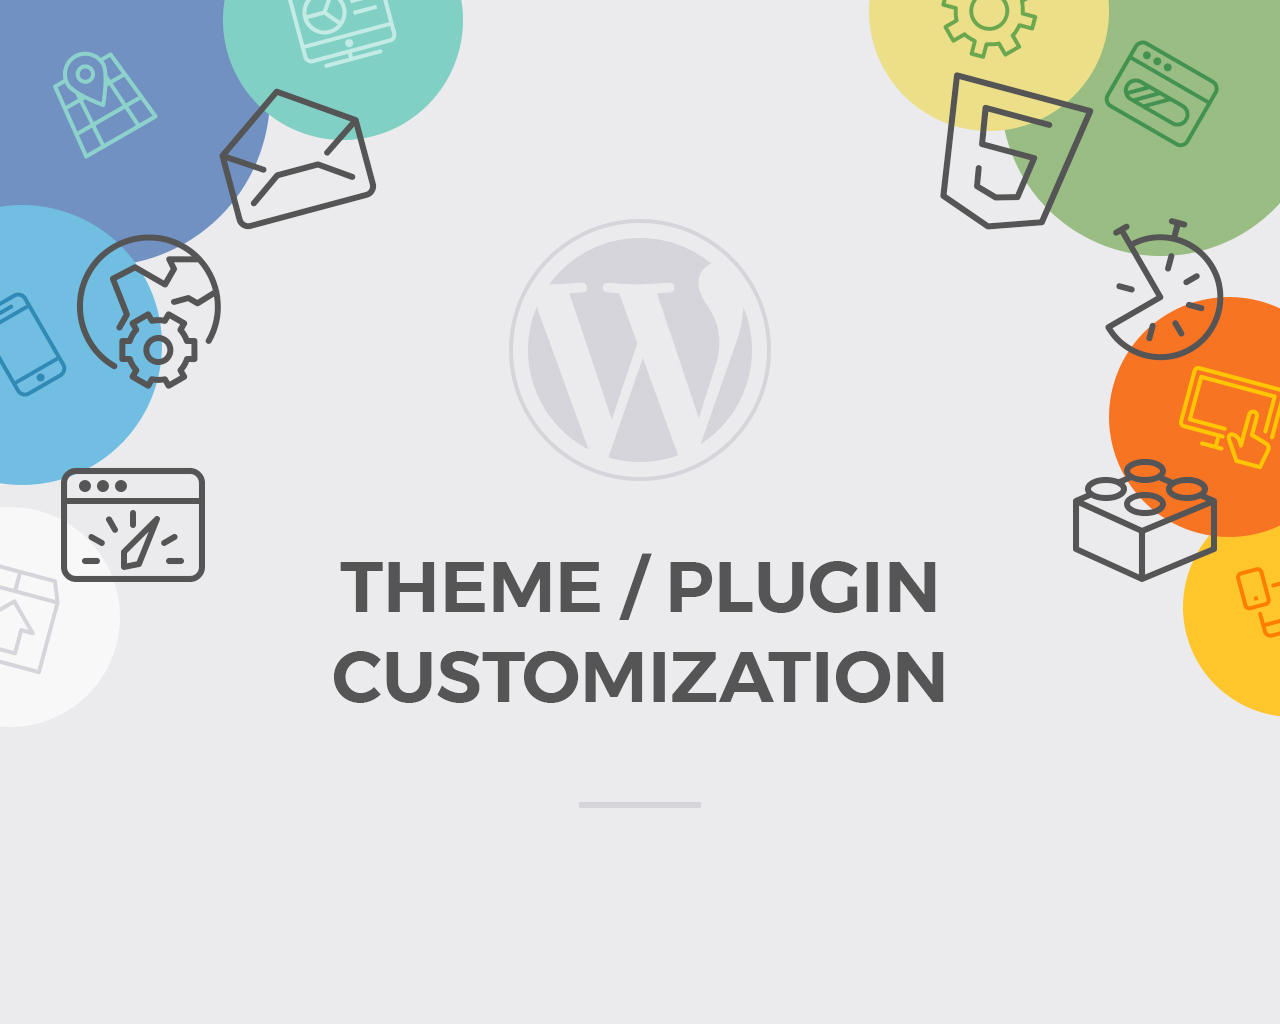 WordPress Theme/Plugin Customization by QuanticaLabs - 109780